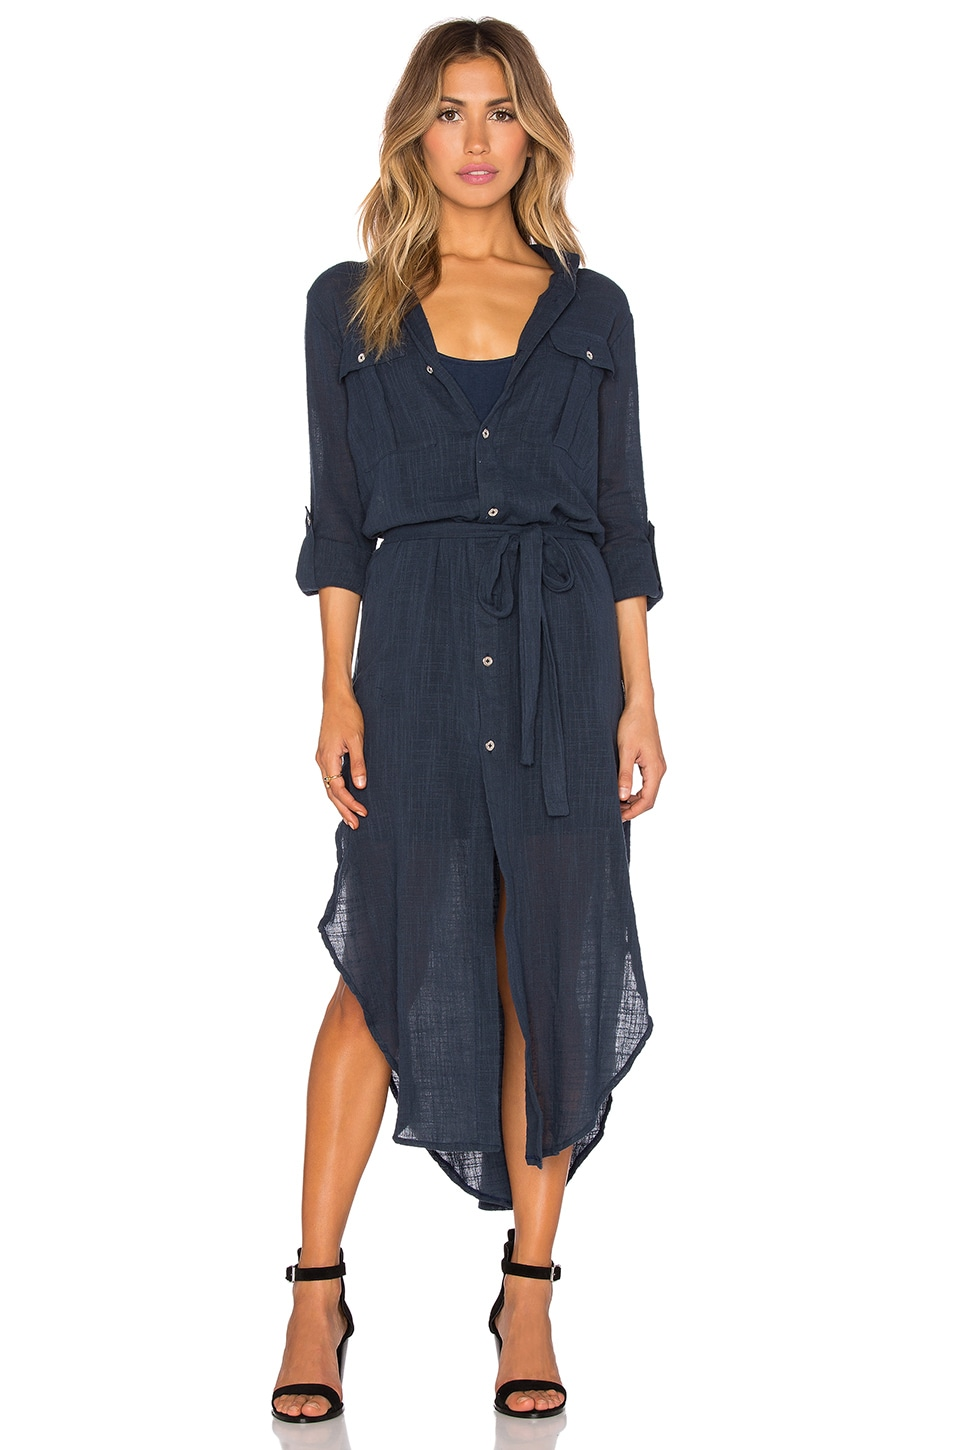 Zare Shirt Dress by Steele